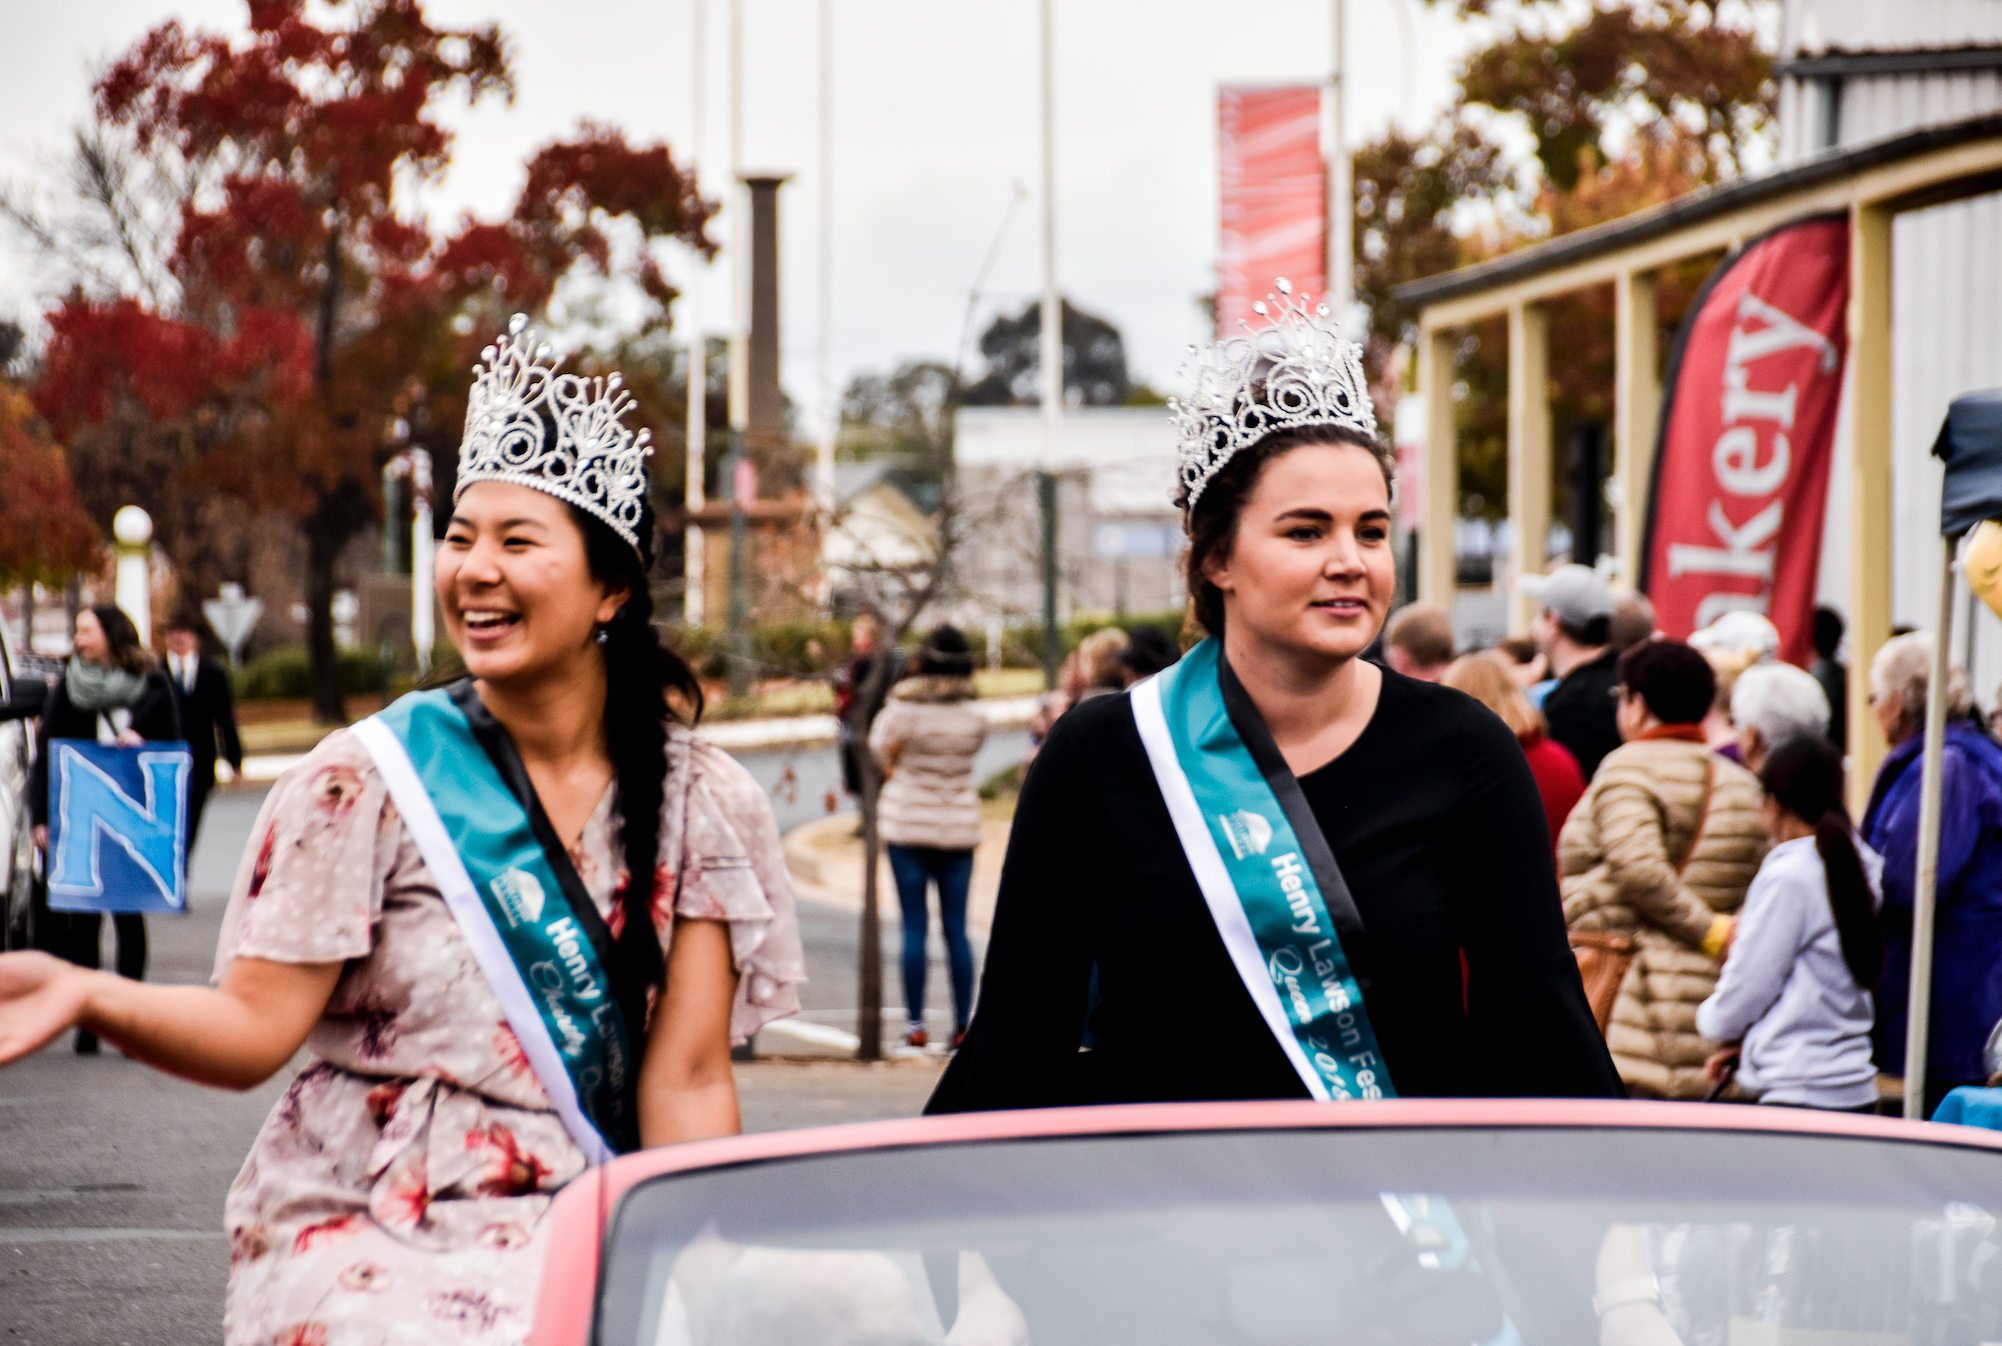 Henry Lawson Festival of Arts  past Queens (2018)